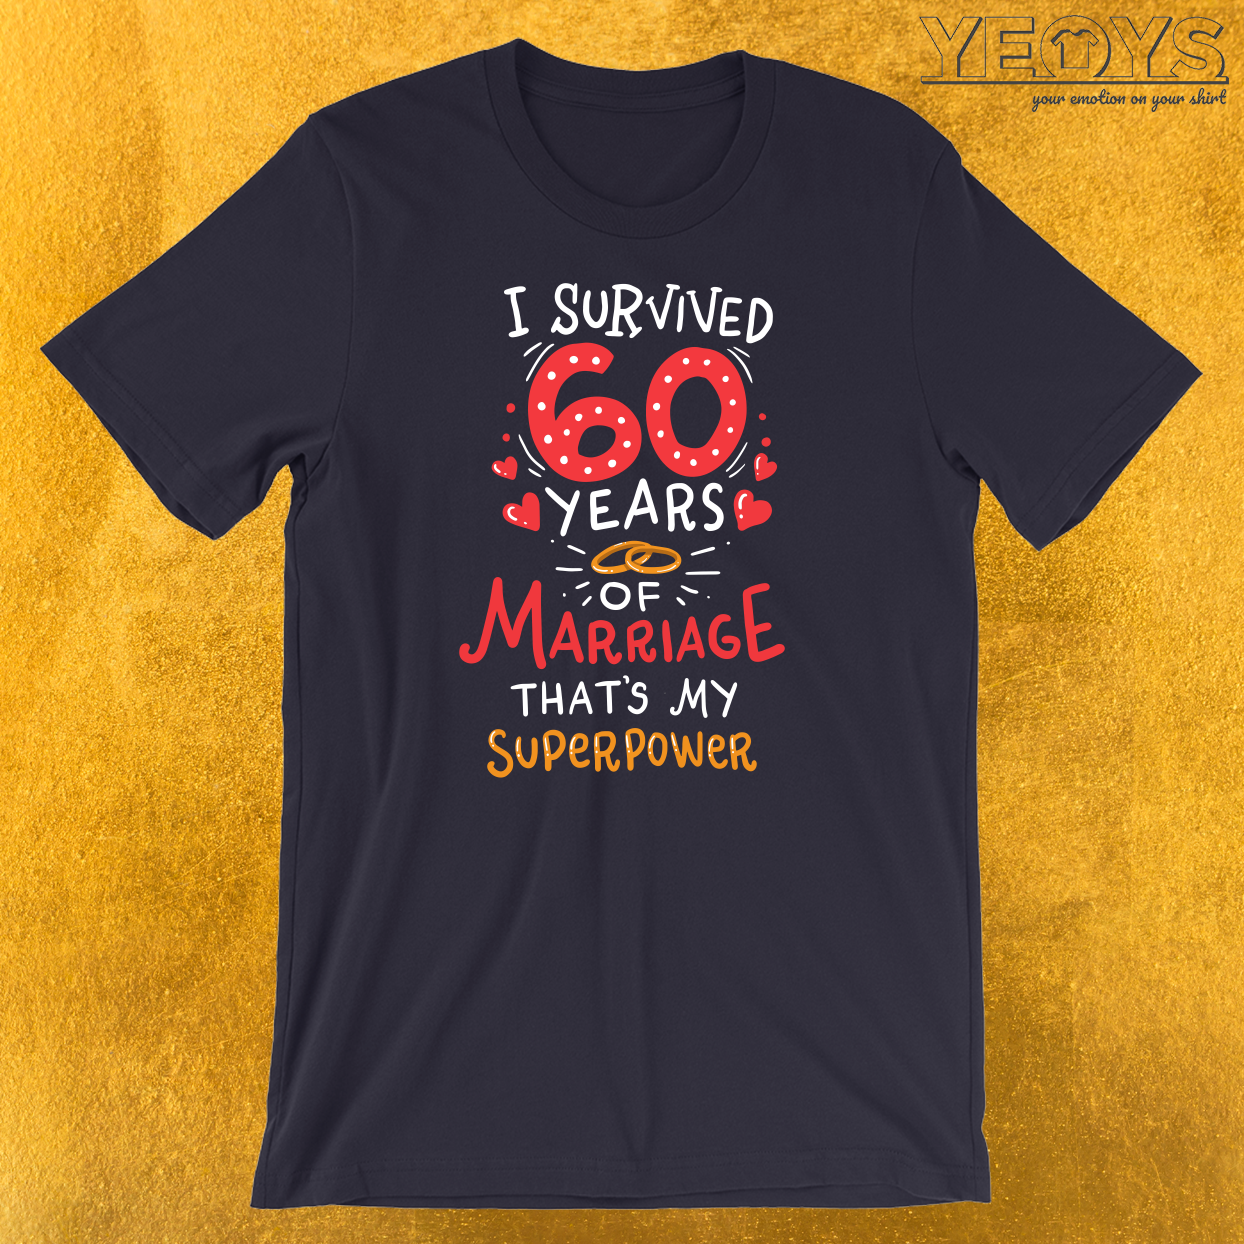 I Survived 60 Years Of Marriage T-Shirt